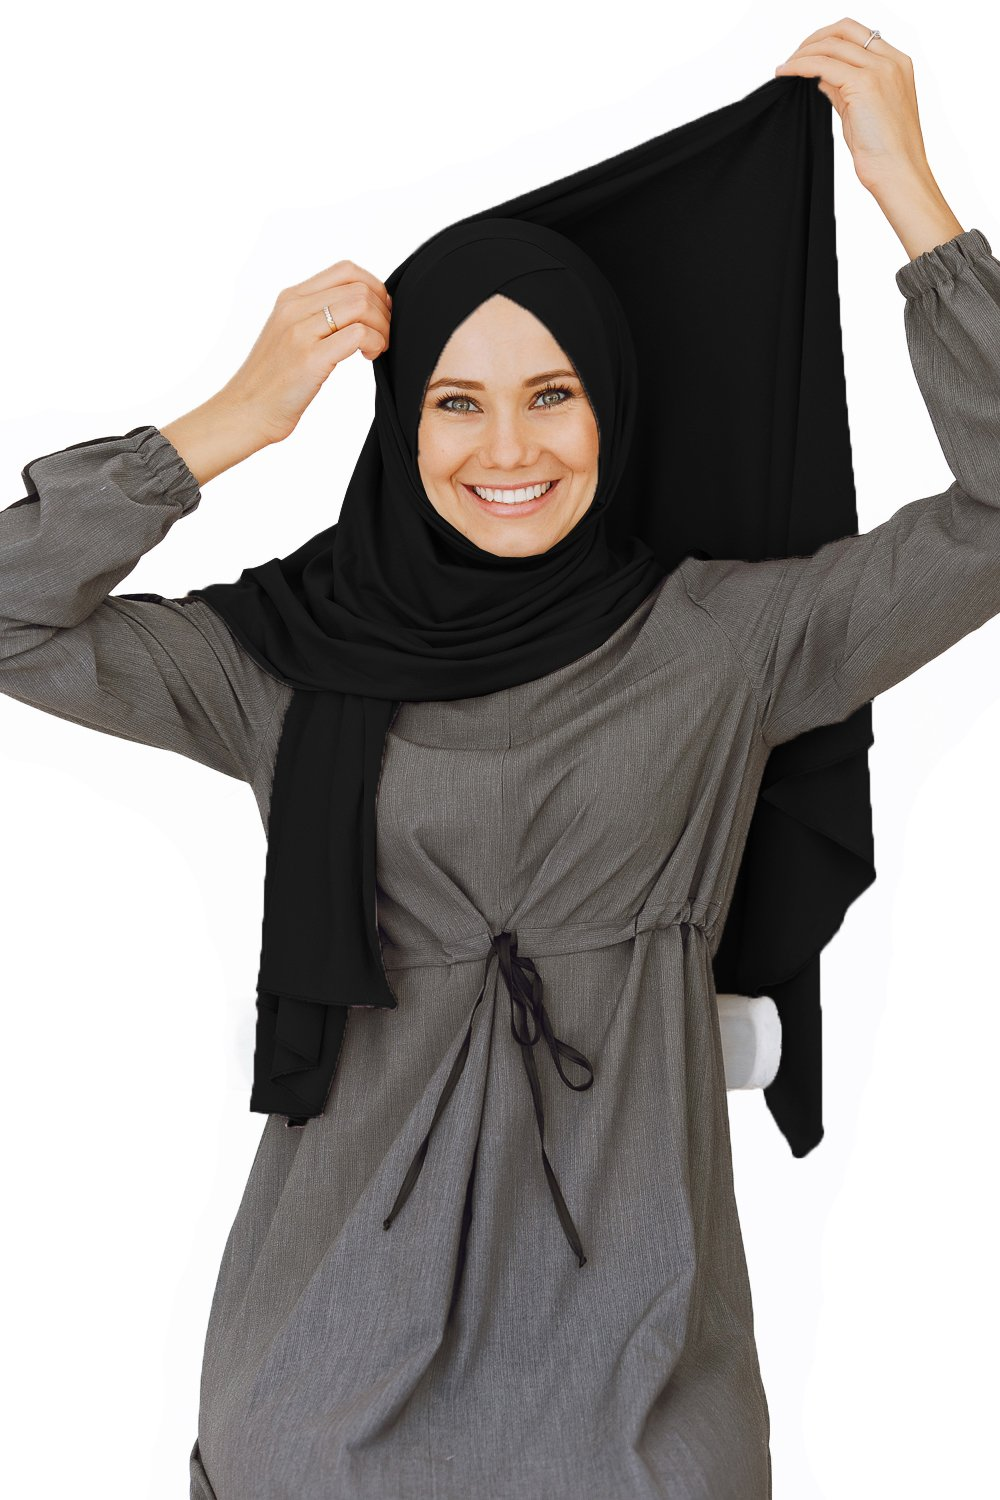 Cotton head scarf, instant black hijab, ready to wear muslim accessories for women (Black) by VeilWear (Image #6)